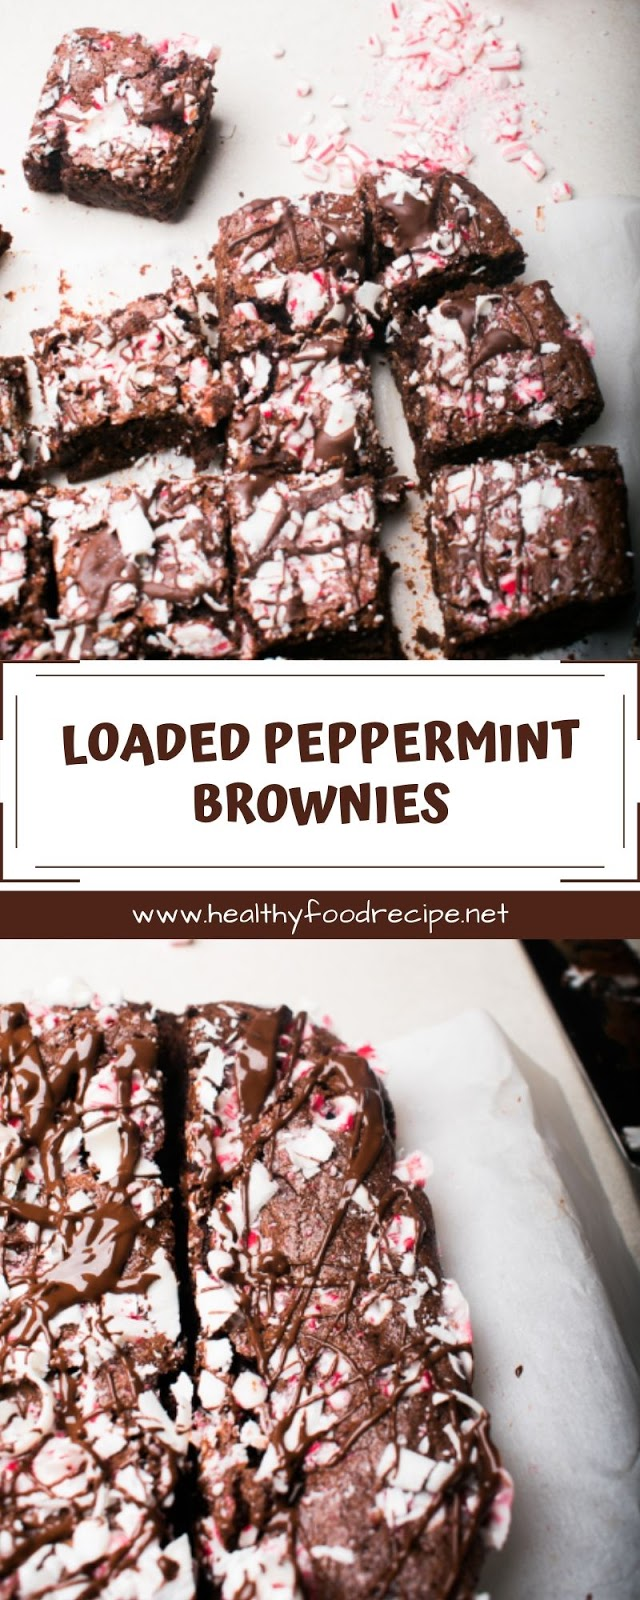 LOADED PEPPERMINT BROWNIES